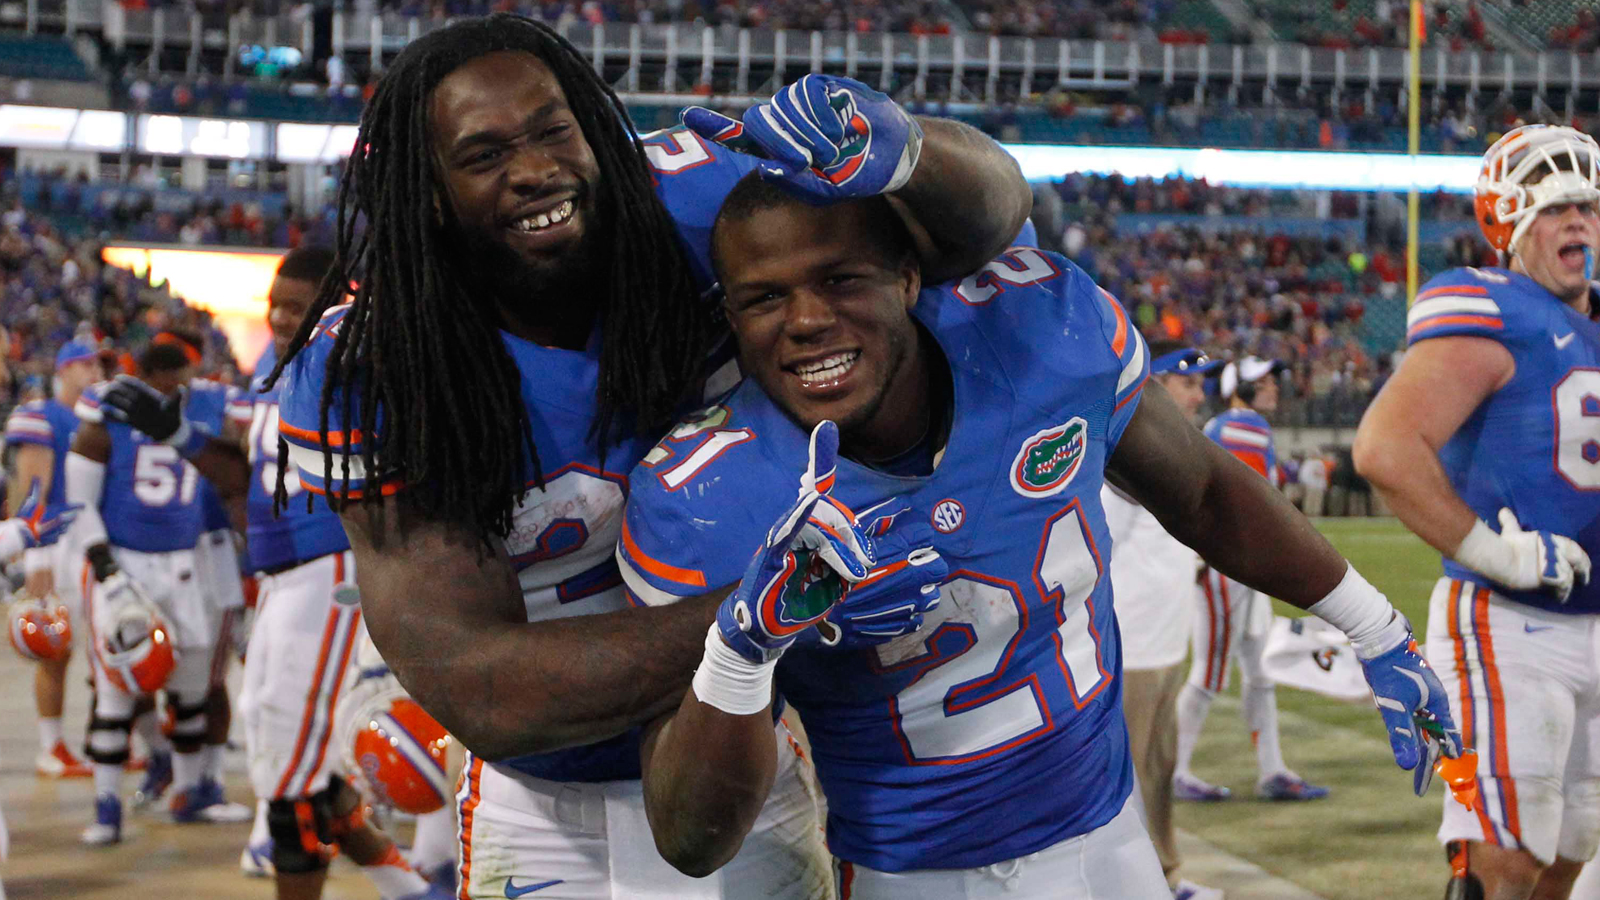 For the first time we're going to have two players as Ballers of the Week. Kelvin Taylor (21) and Matt Jones (24) both tore the Bulldogs apart. Taylor, son of former NFL running back, Fred Taylor, is only in his sophomore season and I can definitely see some of his daddy's skills in him. Jones is in his junior season, trying to eclipse 1,000 yards for the first time in his career. Both had a career day against the Bulldogs, averaging close to 8 yards a pop. (AP Photo)